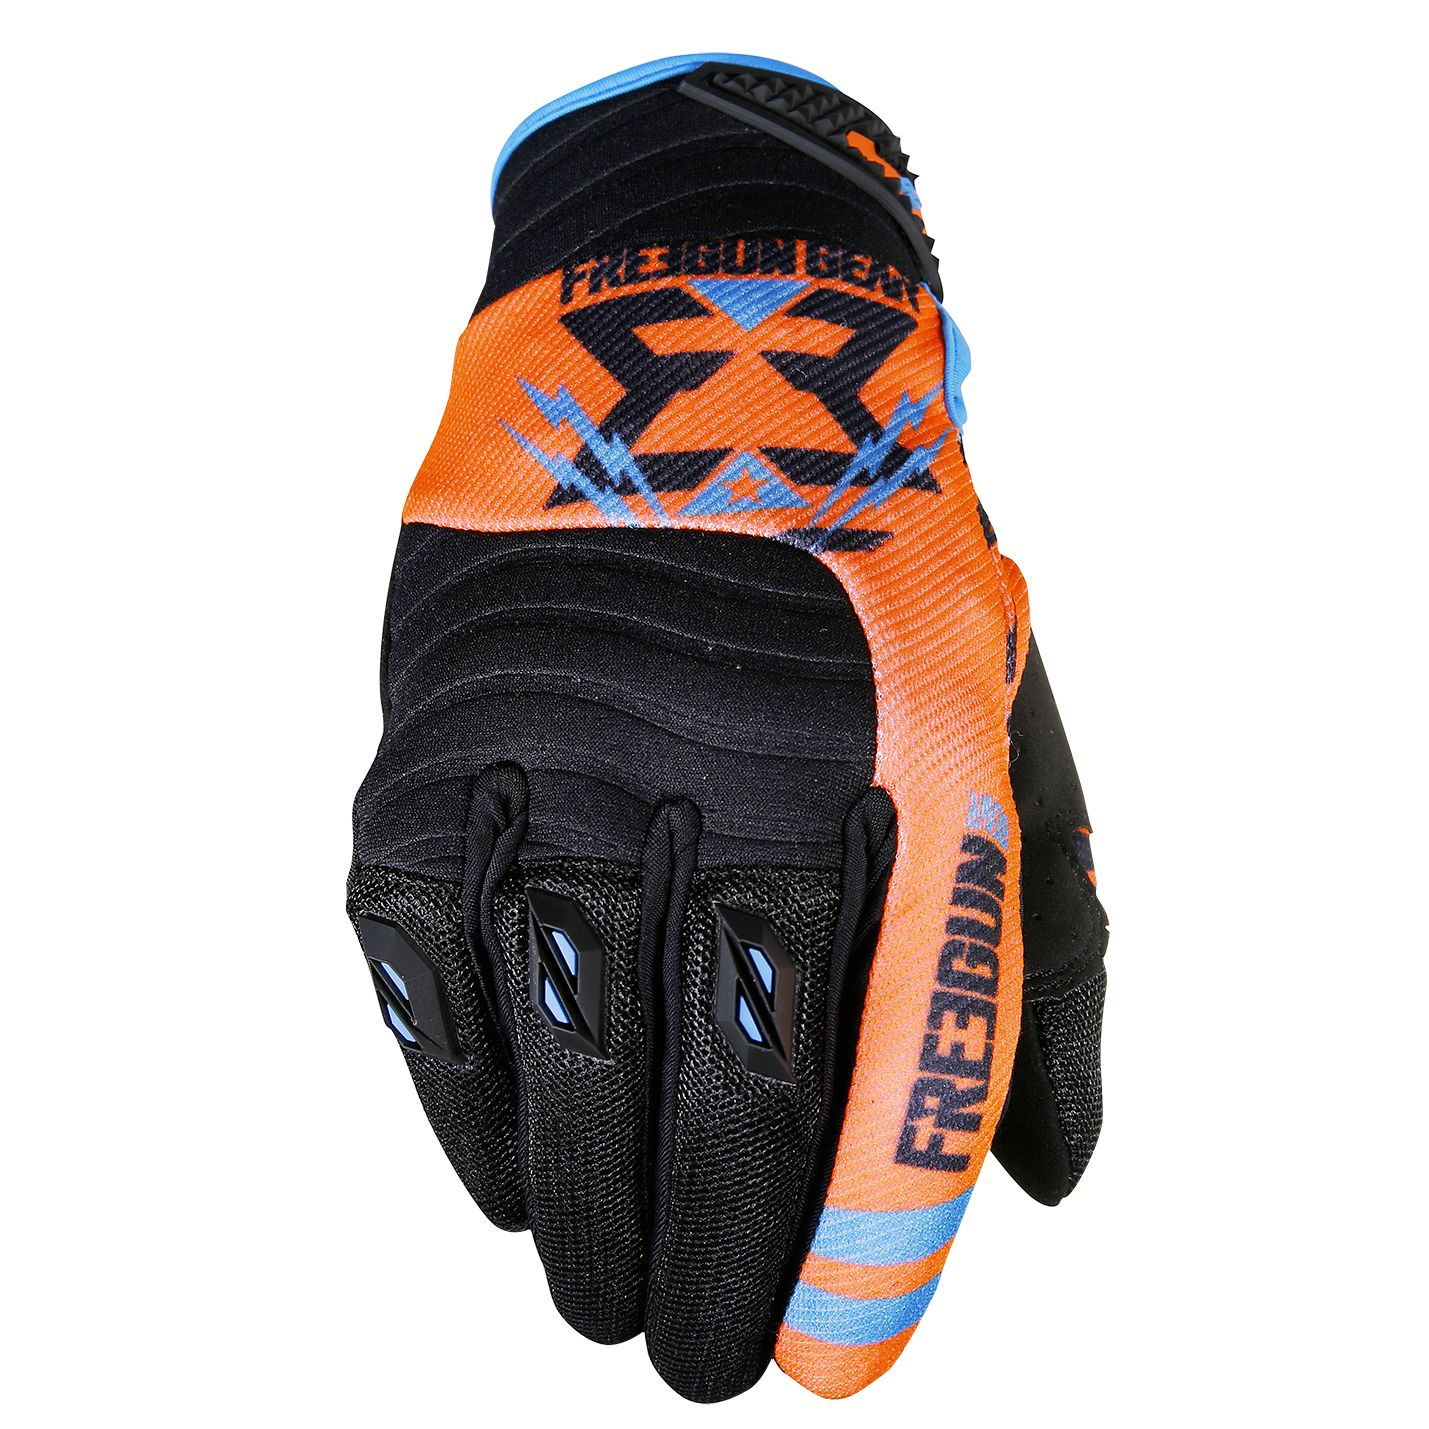 Gants cross Shot destockage CONTACT TROOPER NEON ORANGE CYAN  2017